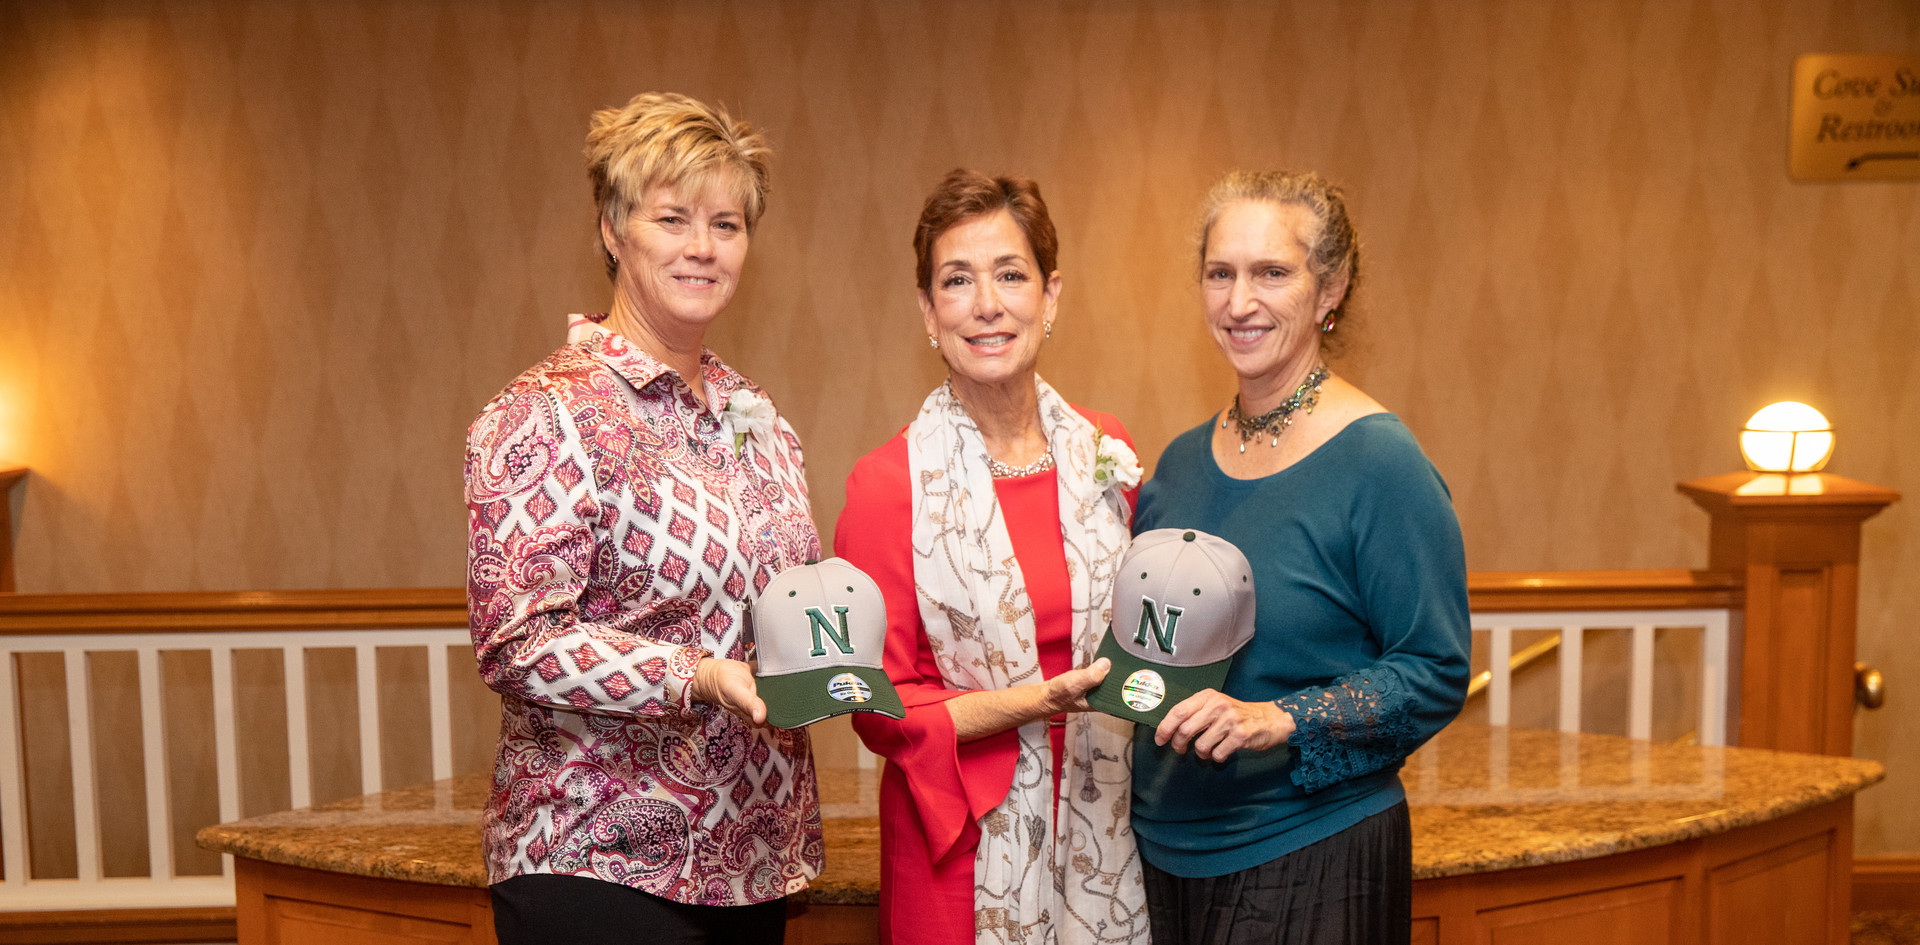 2019 honorees Missy Oman and Maria Marino with 2013 honoree Celia Bobrowsky with hats from their high school days at Norwalk High.  (photo by Josh Molaver)